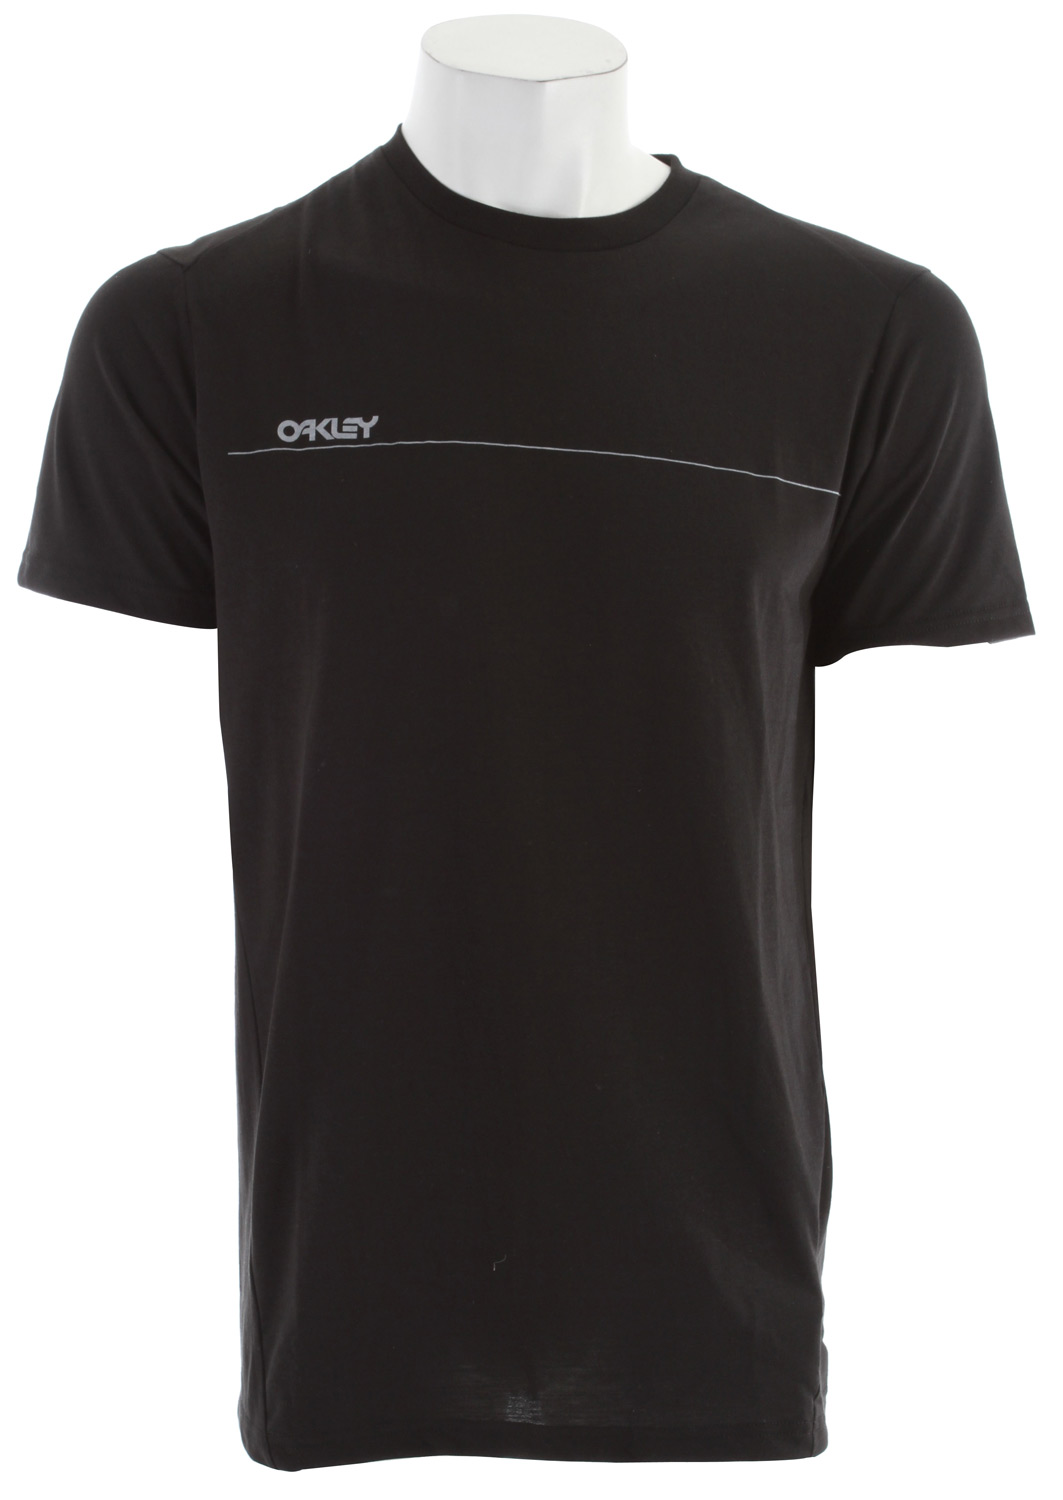 Key Features of The Oakley Unreal T-Shirt: Regular Fit Crew Neck Short Sleeve Hydrolix tee with front screen print. 85% polyester, 15% cotton - $15.95